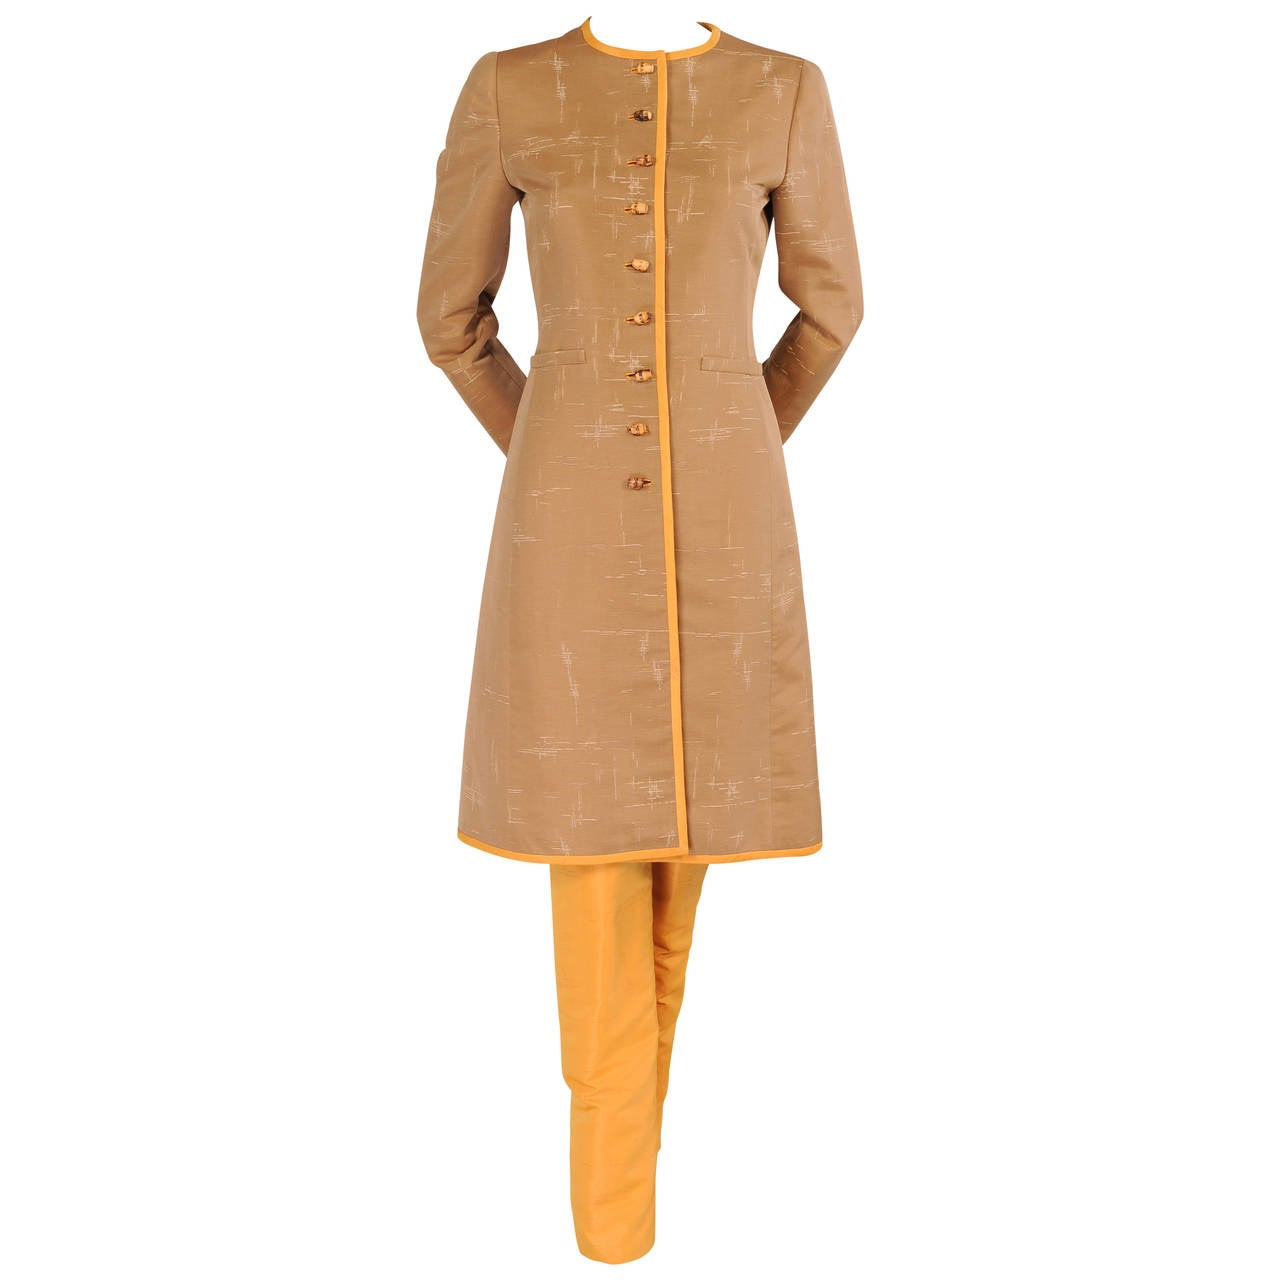 Oscar de la Renta Slim Coat & Pants Ensemble in Tan and Saffron Silk For Sale